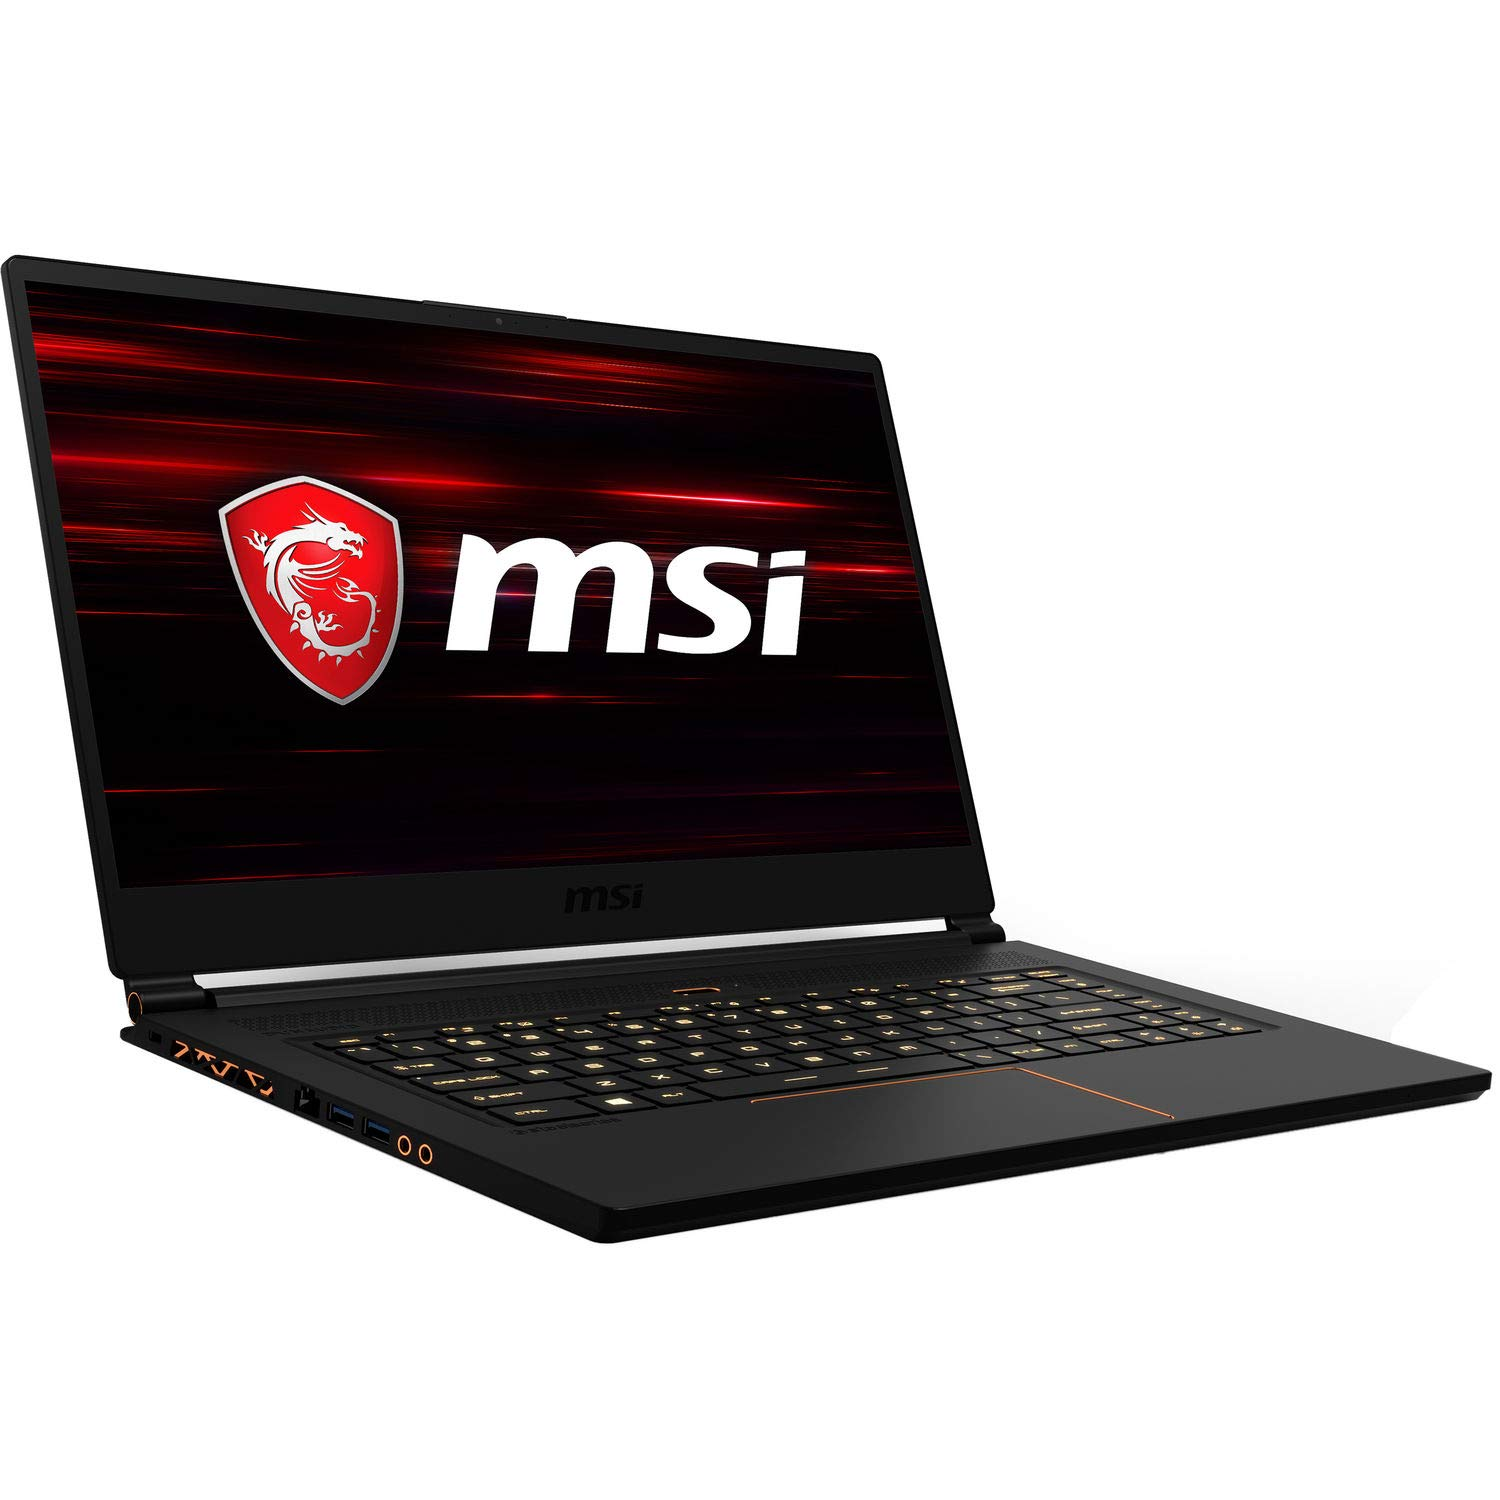 MSI GS65 Stealth Thin and Light Premium Gaming and Business Laptop (Intel 8th Gen i7-8750H, 16GB RAM, 1TB PCIe SSD, 15.6